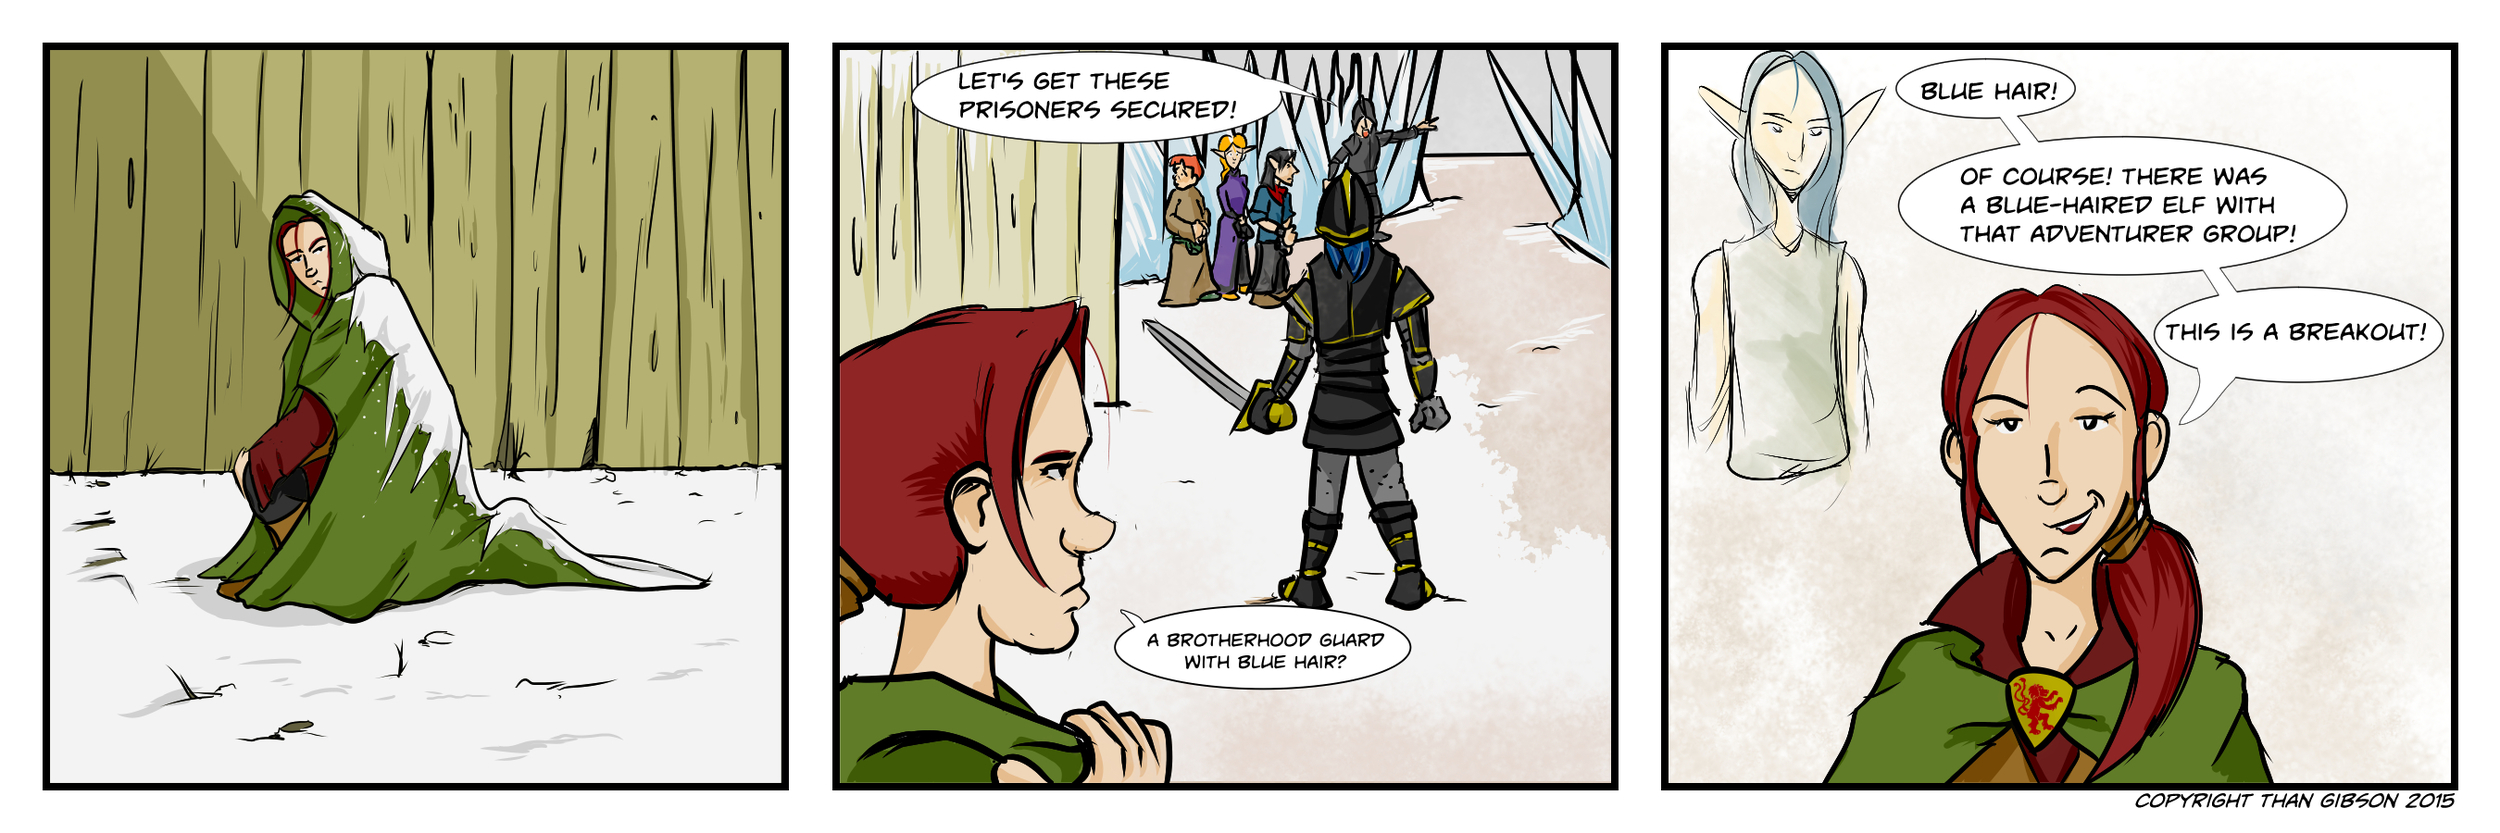 A Chronicle of Thieves -Chapter 2, Strip 16